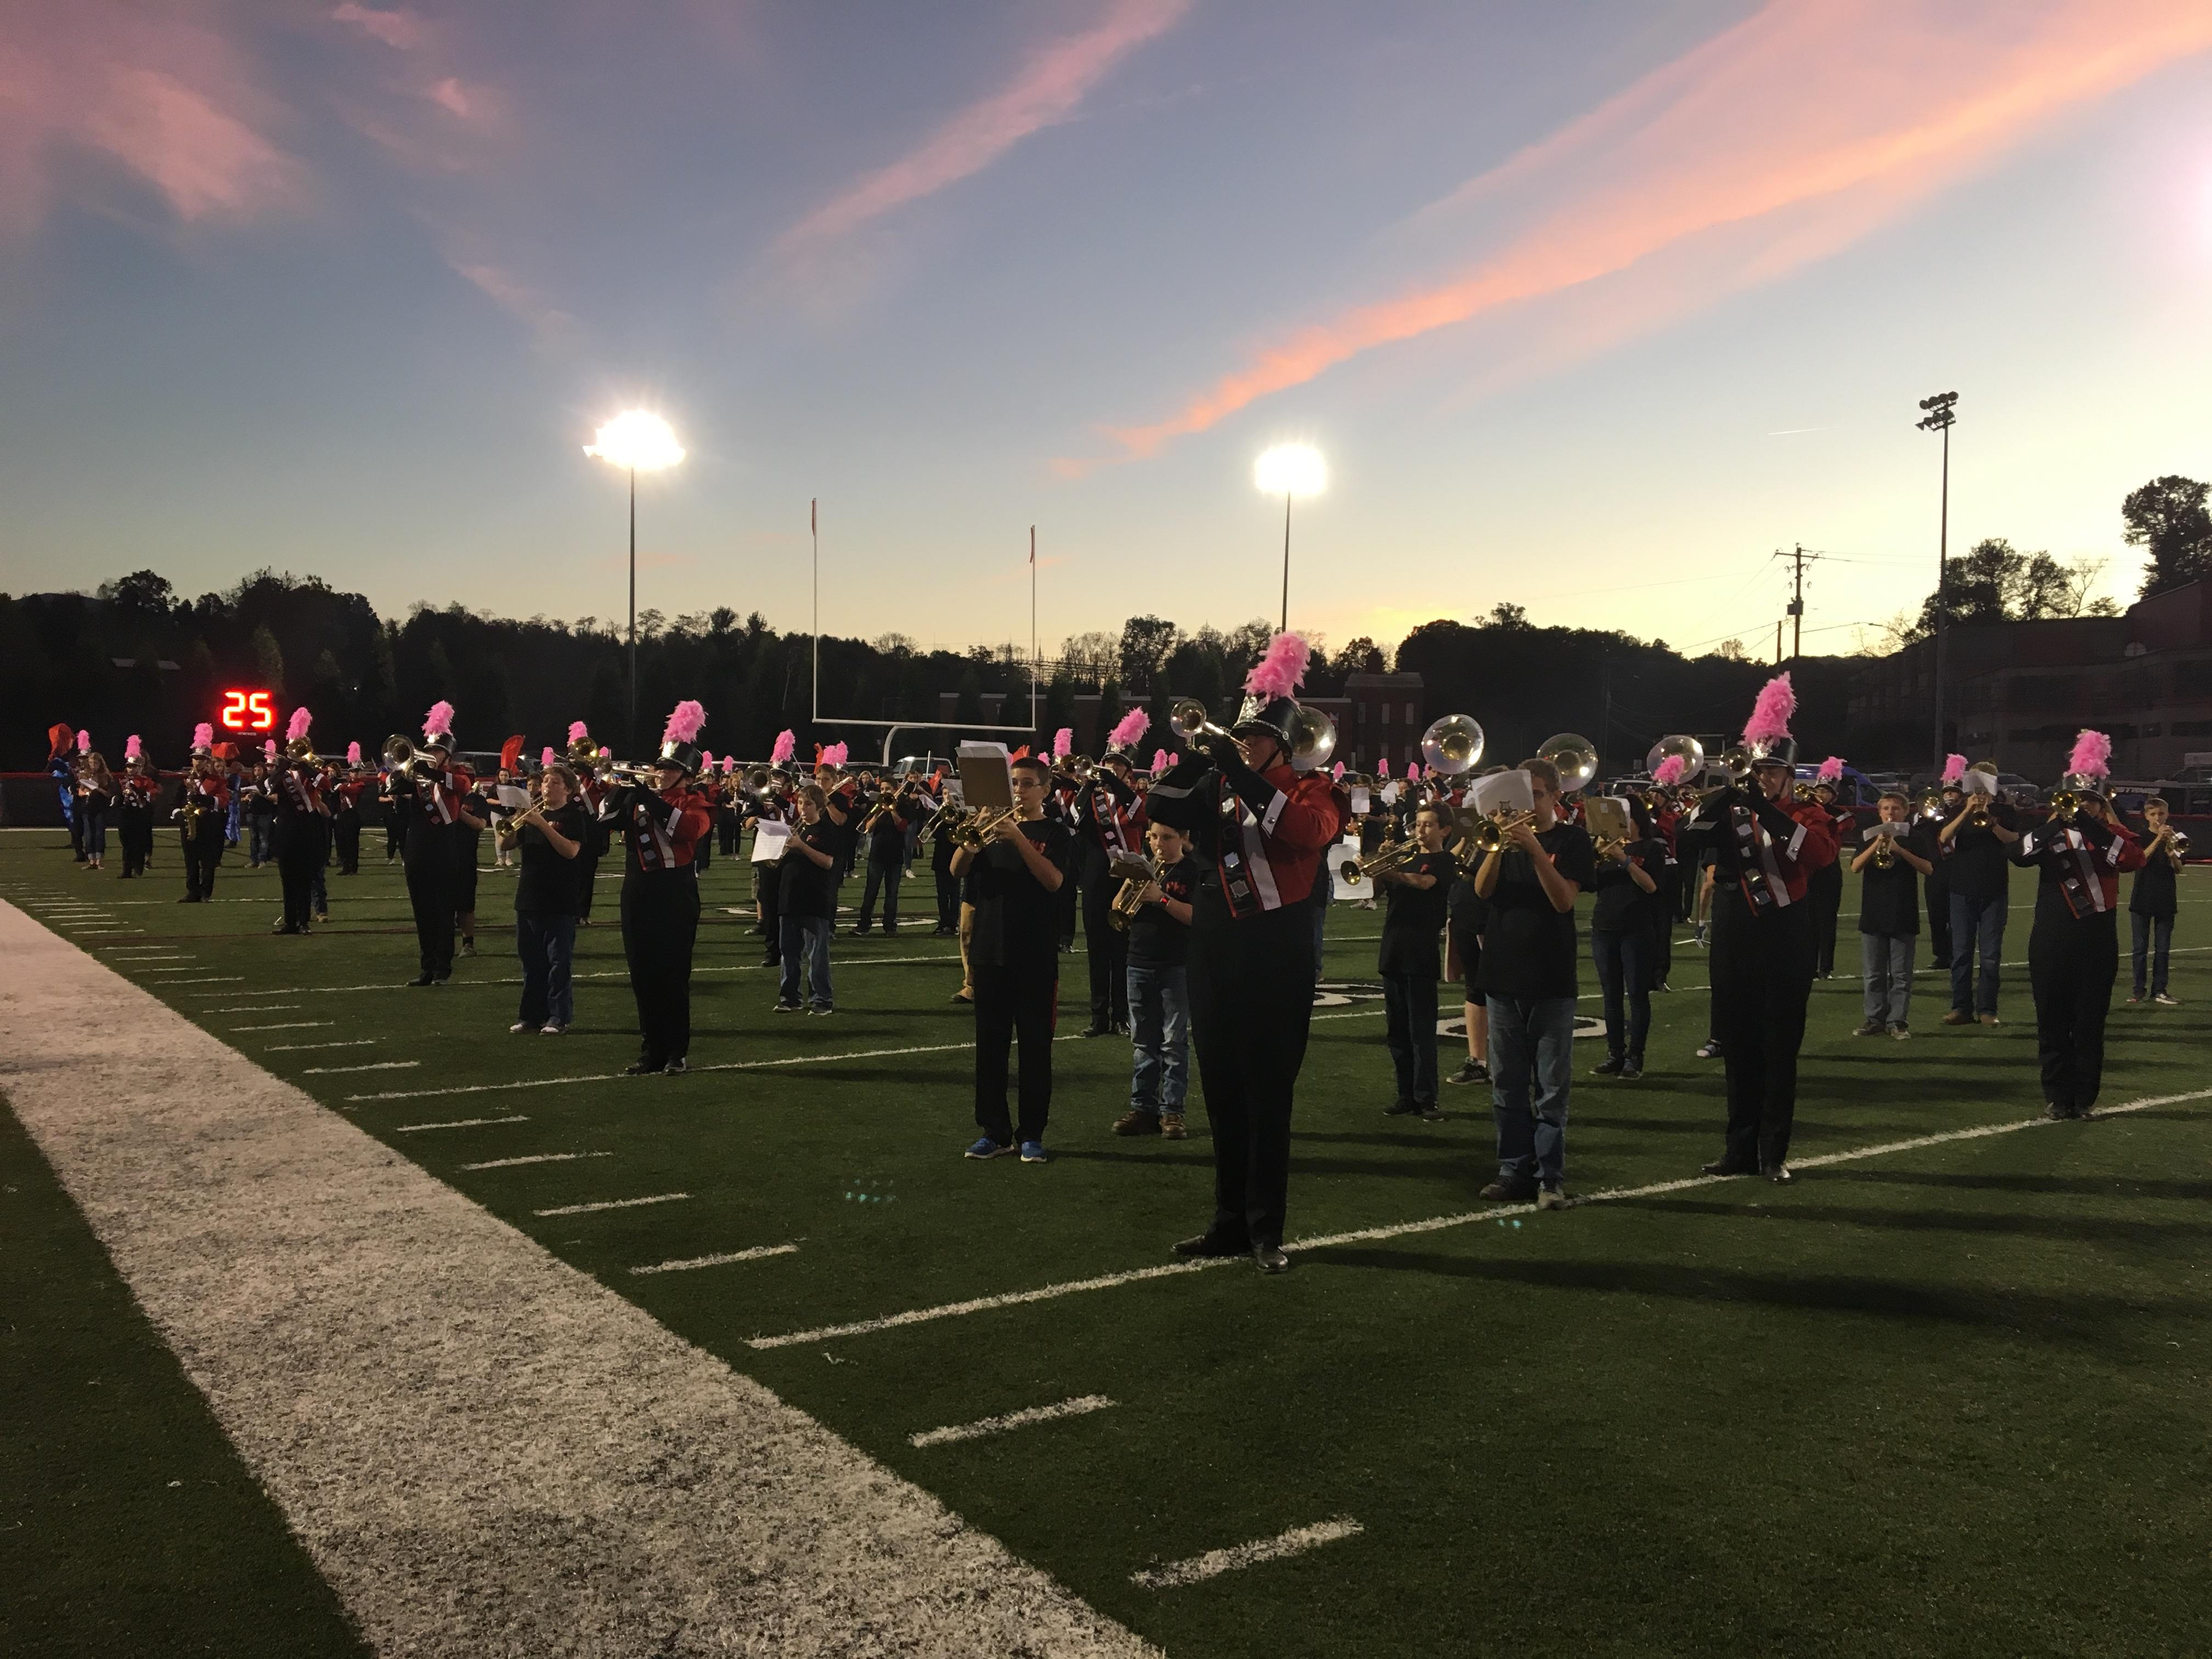 Smoky Mountain vs Pisgah, 10-06-2017 (Photo credit: WLOS Staff)